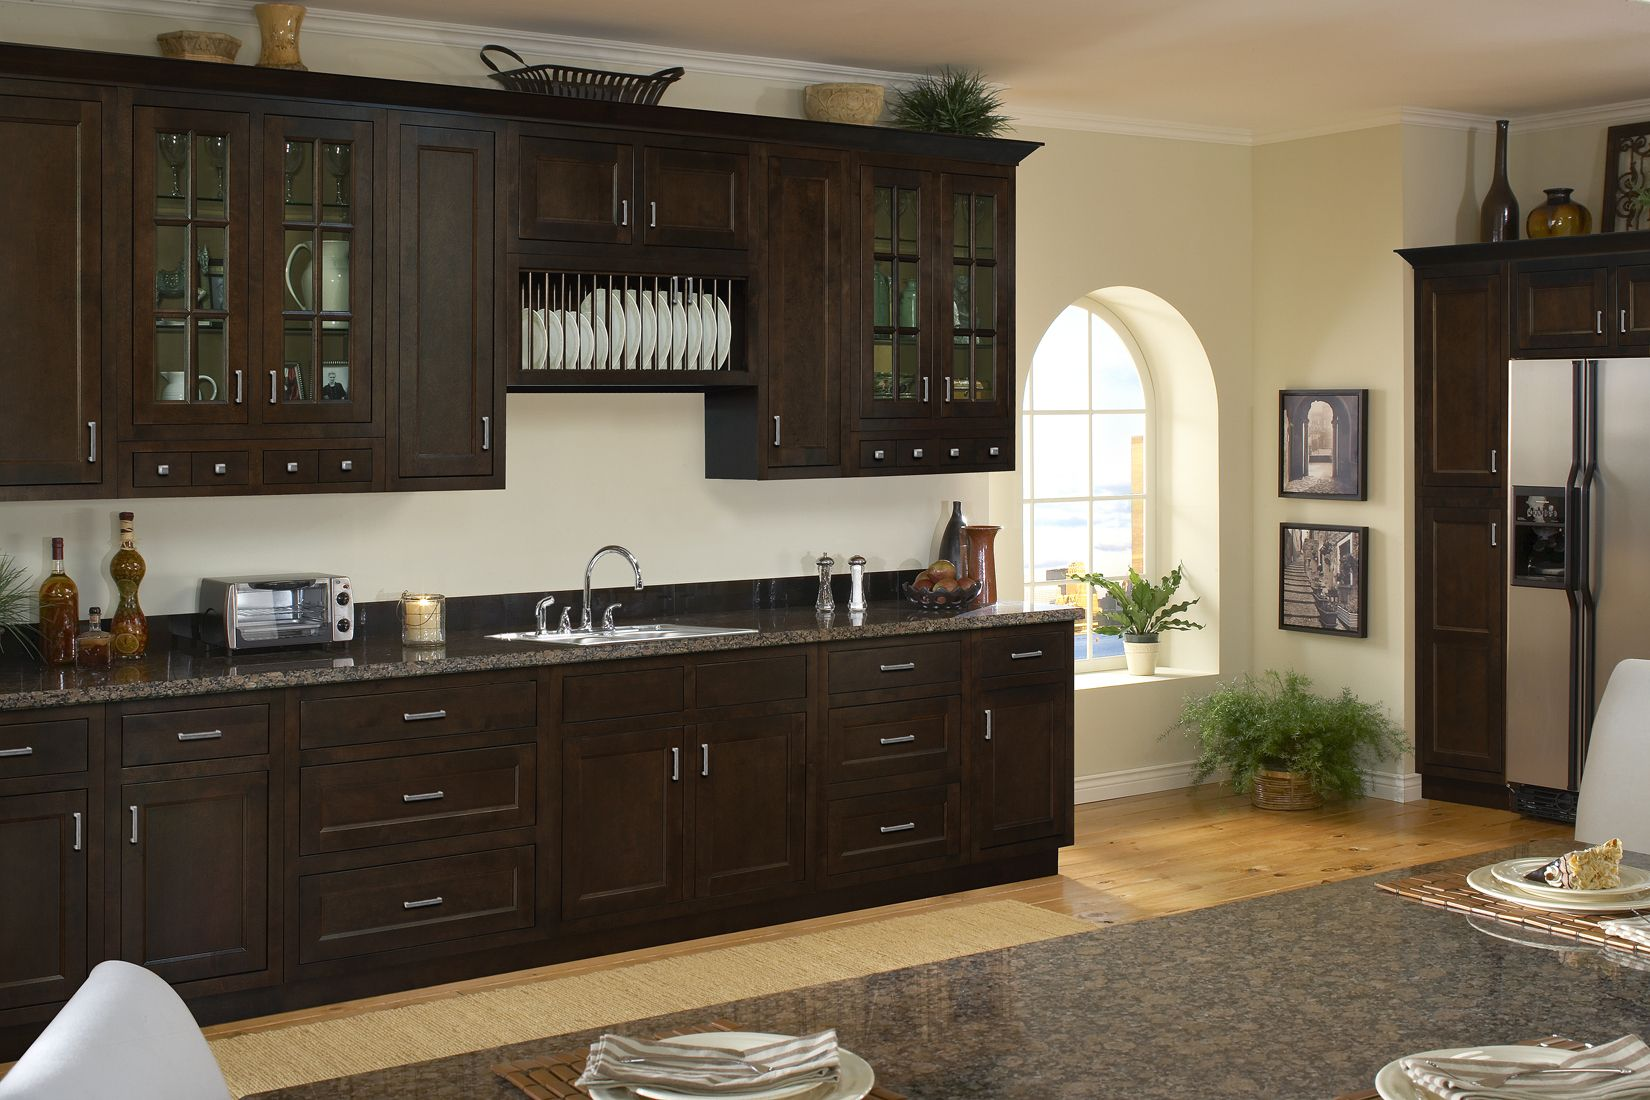 The New Healdsburg Kitchen Collection From Sunnywood Find Out More At Www Sunnywoo Kitchen Cabinets For Sale Assembled Kitchen Cabinets Rta Kitchen Cabinets